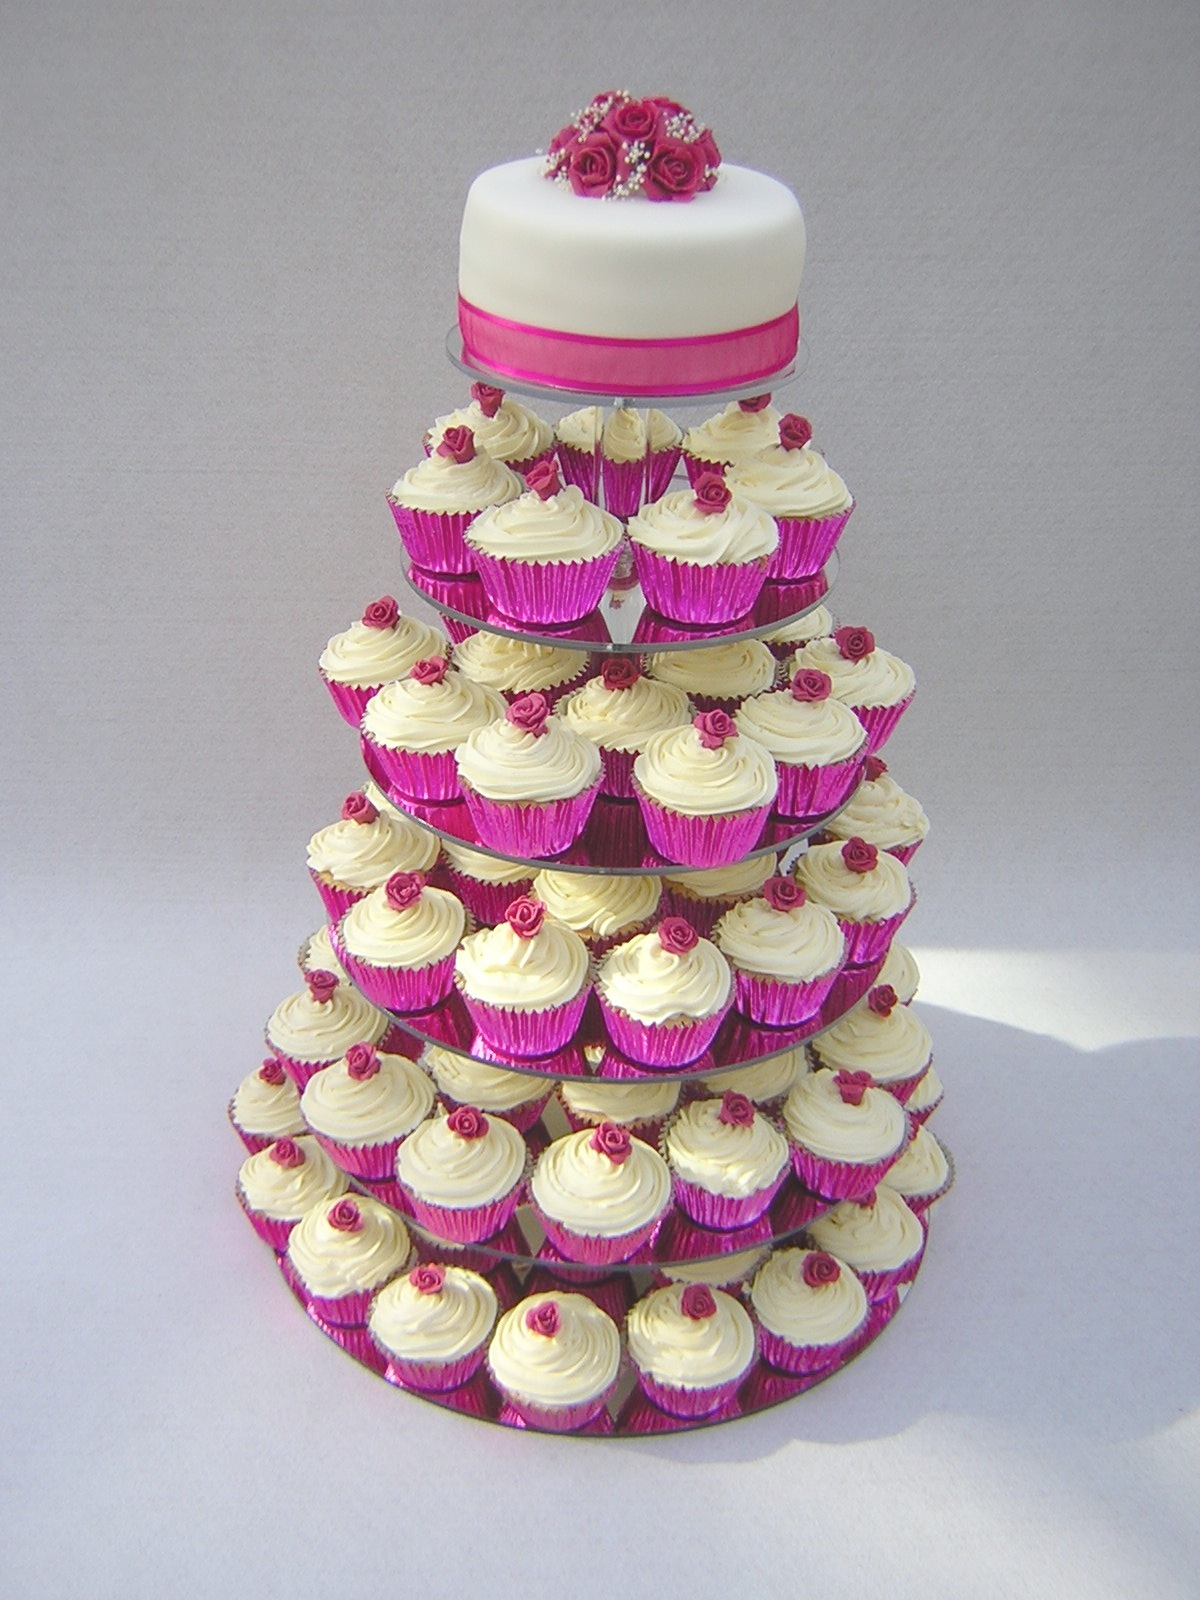 For A Unique Touch Have Wedding Cupcakes For Your Guests Wedding Cake Designs